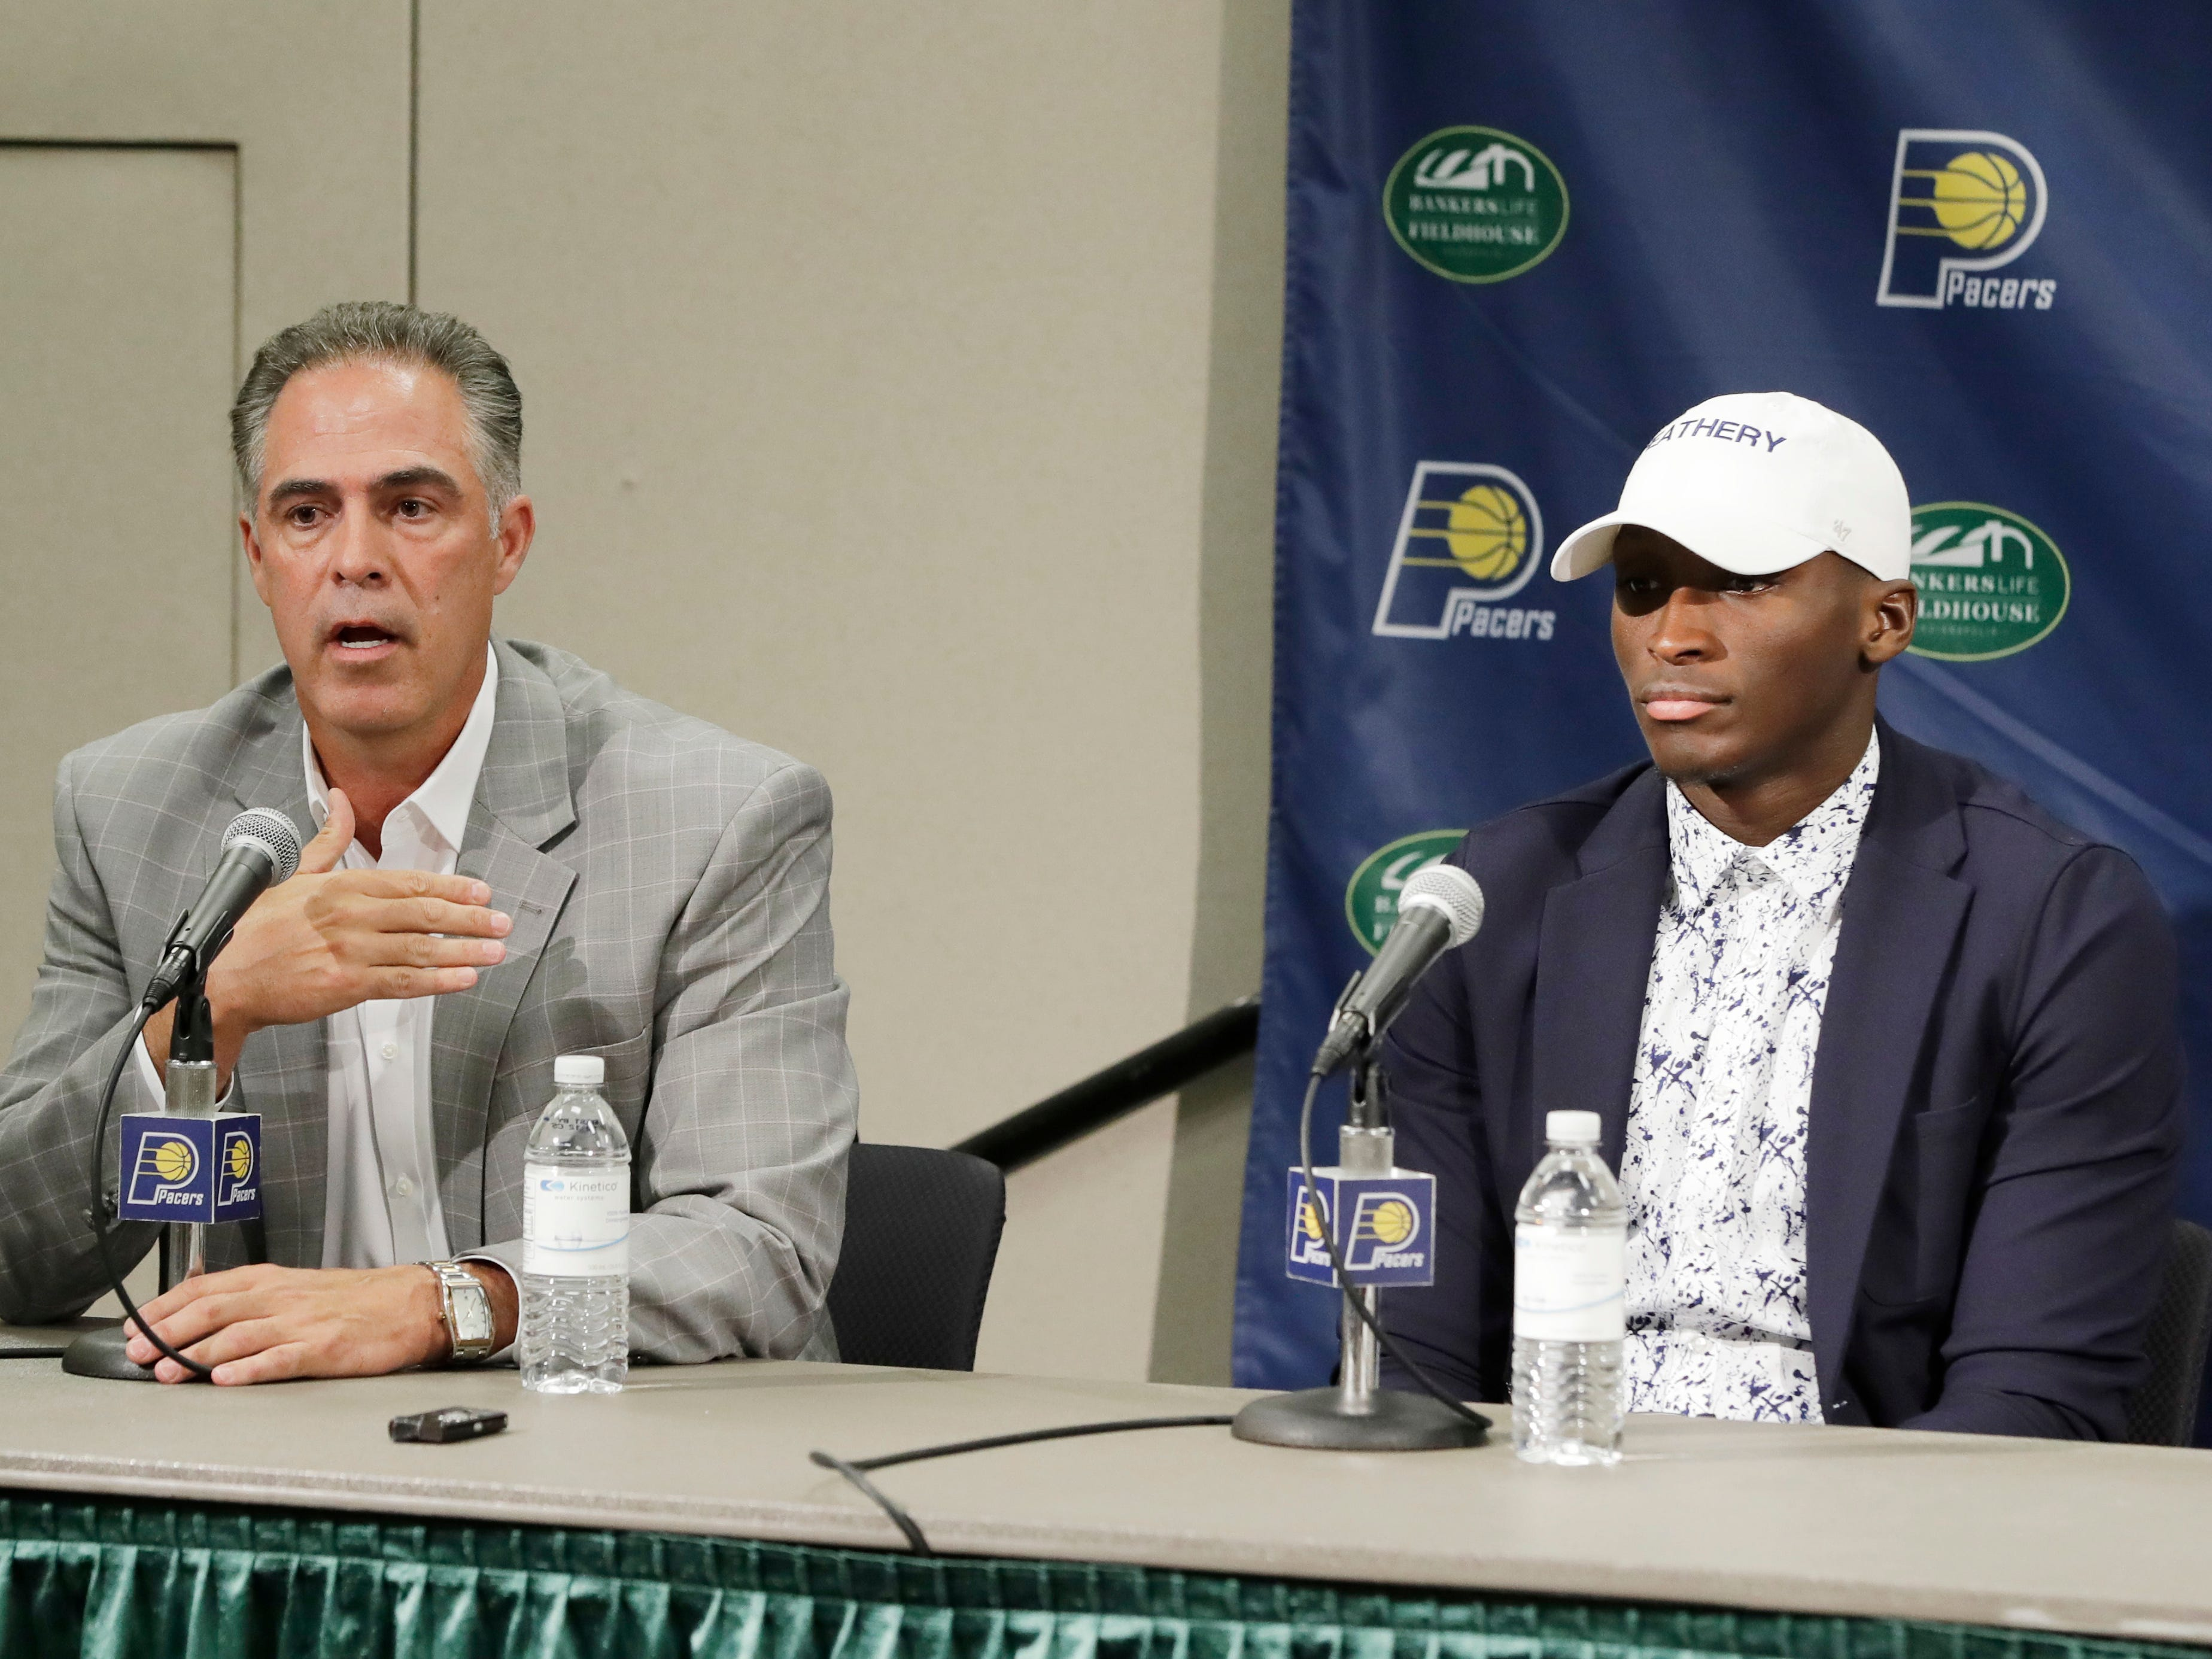 Indiana Pacers general manager Kevin Pritchard, left, speaks as Victor Oladipo listens during a news conference.